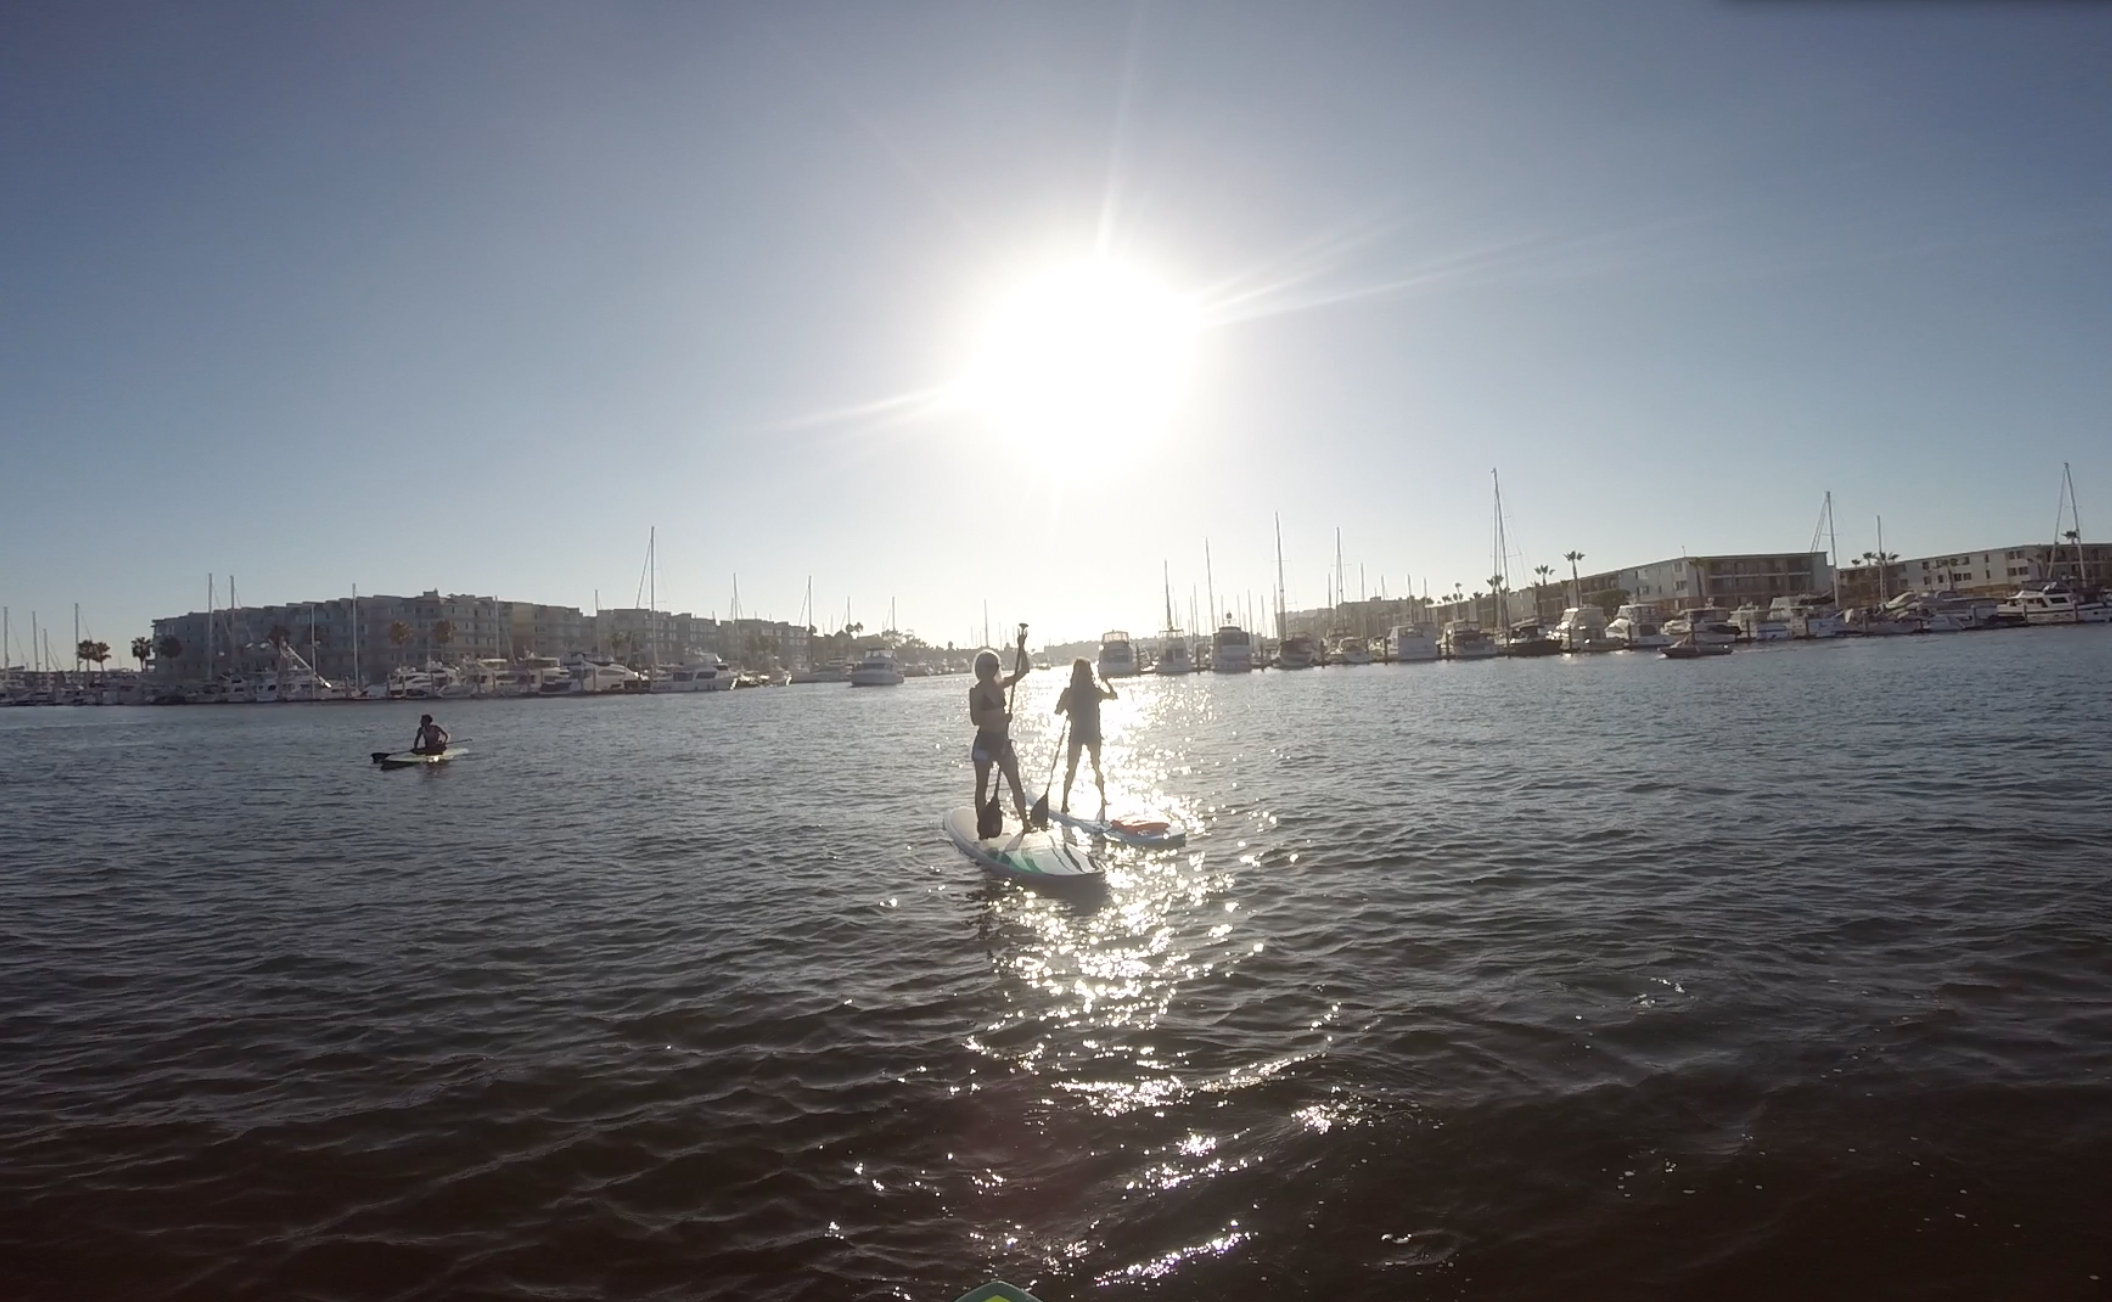 Paddleboarding silhouettes